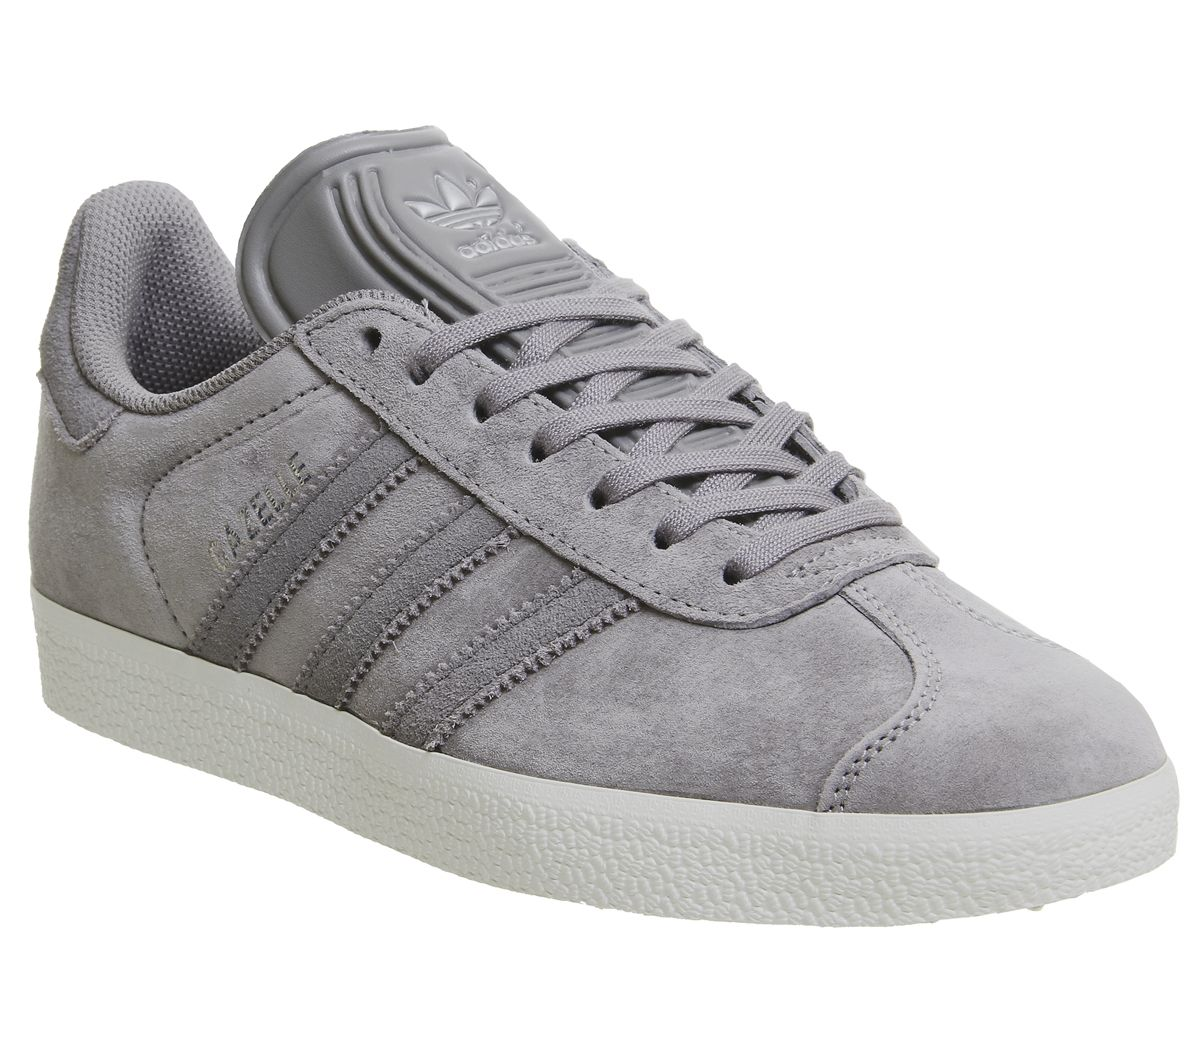 2e96975f adidas Gazelle Trainers Solid Grey Four Silver Exclusive - Unisex Sports